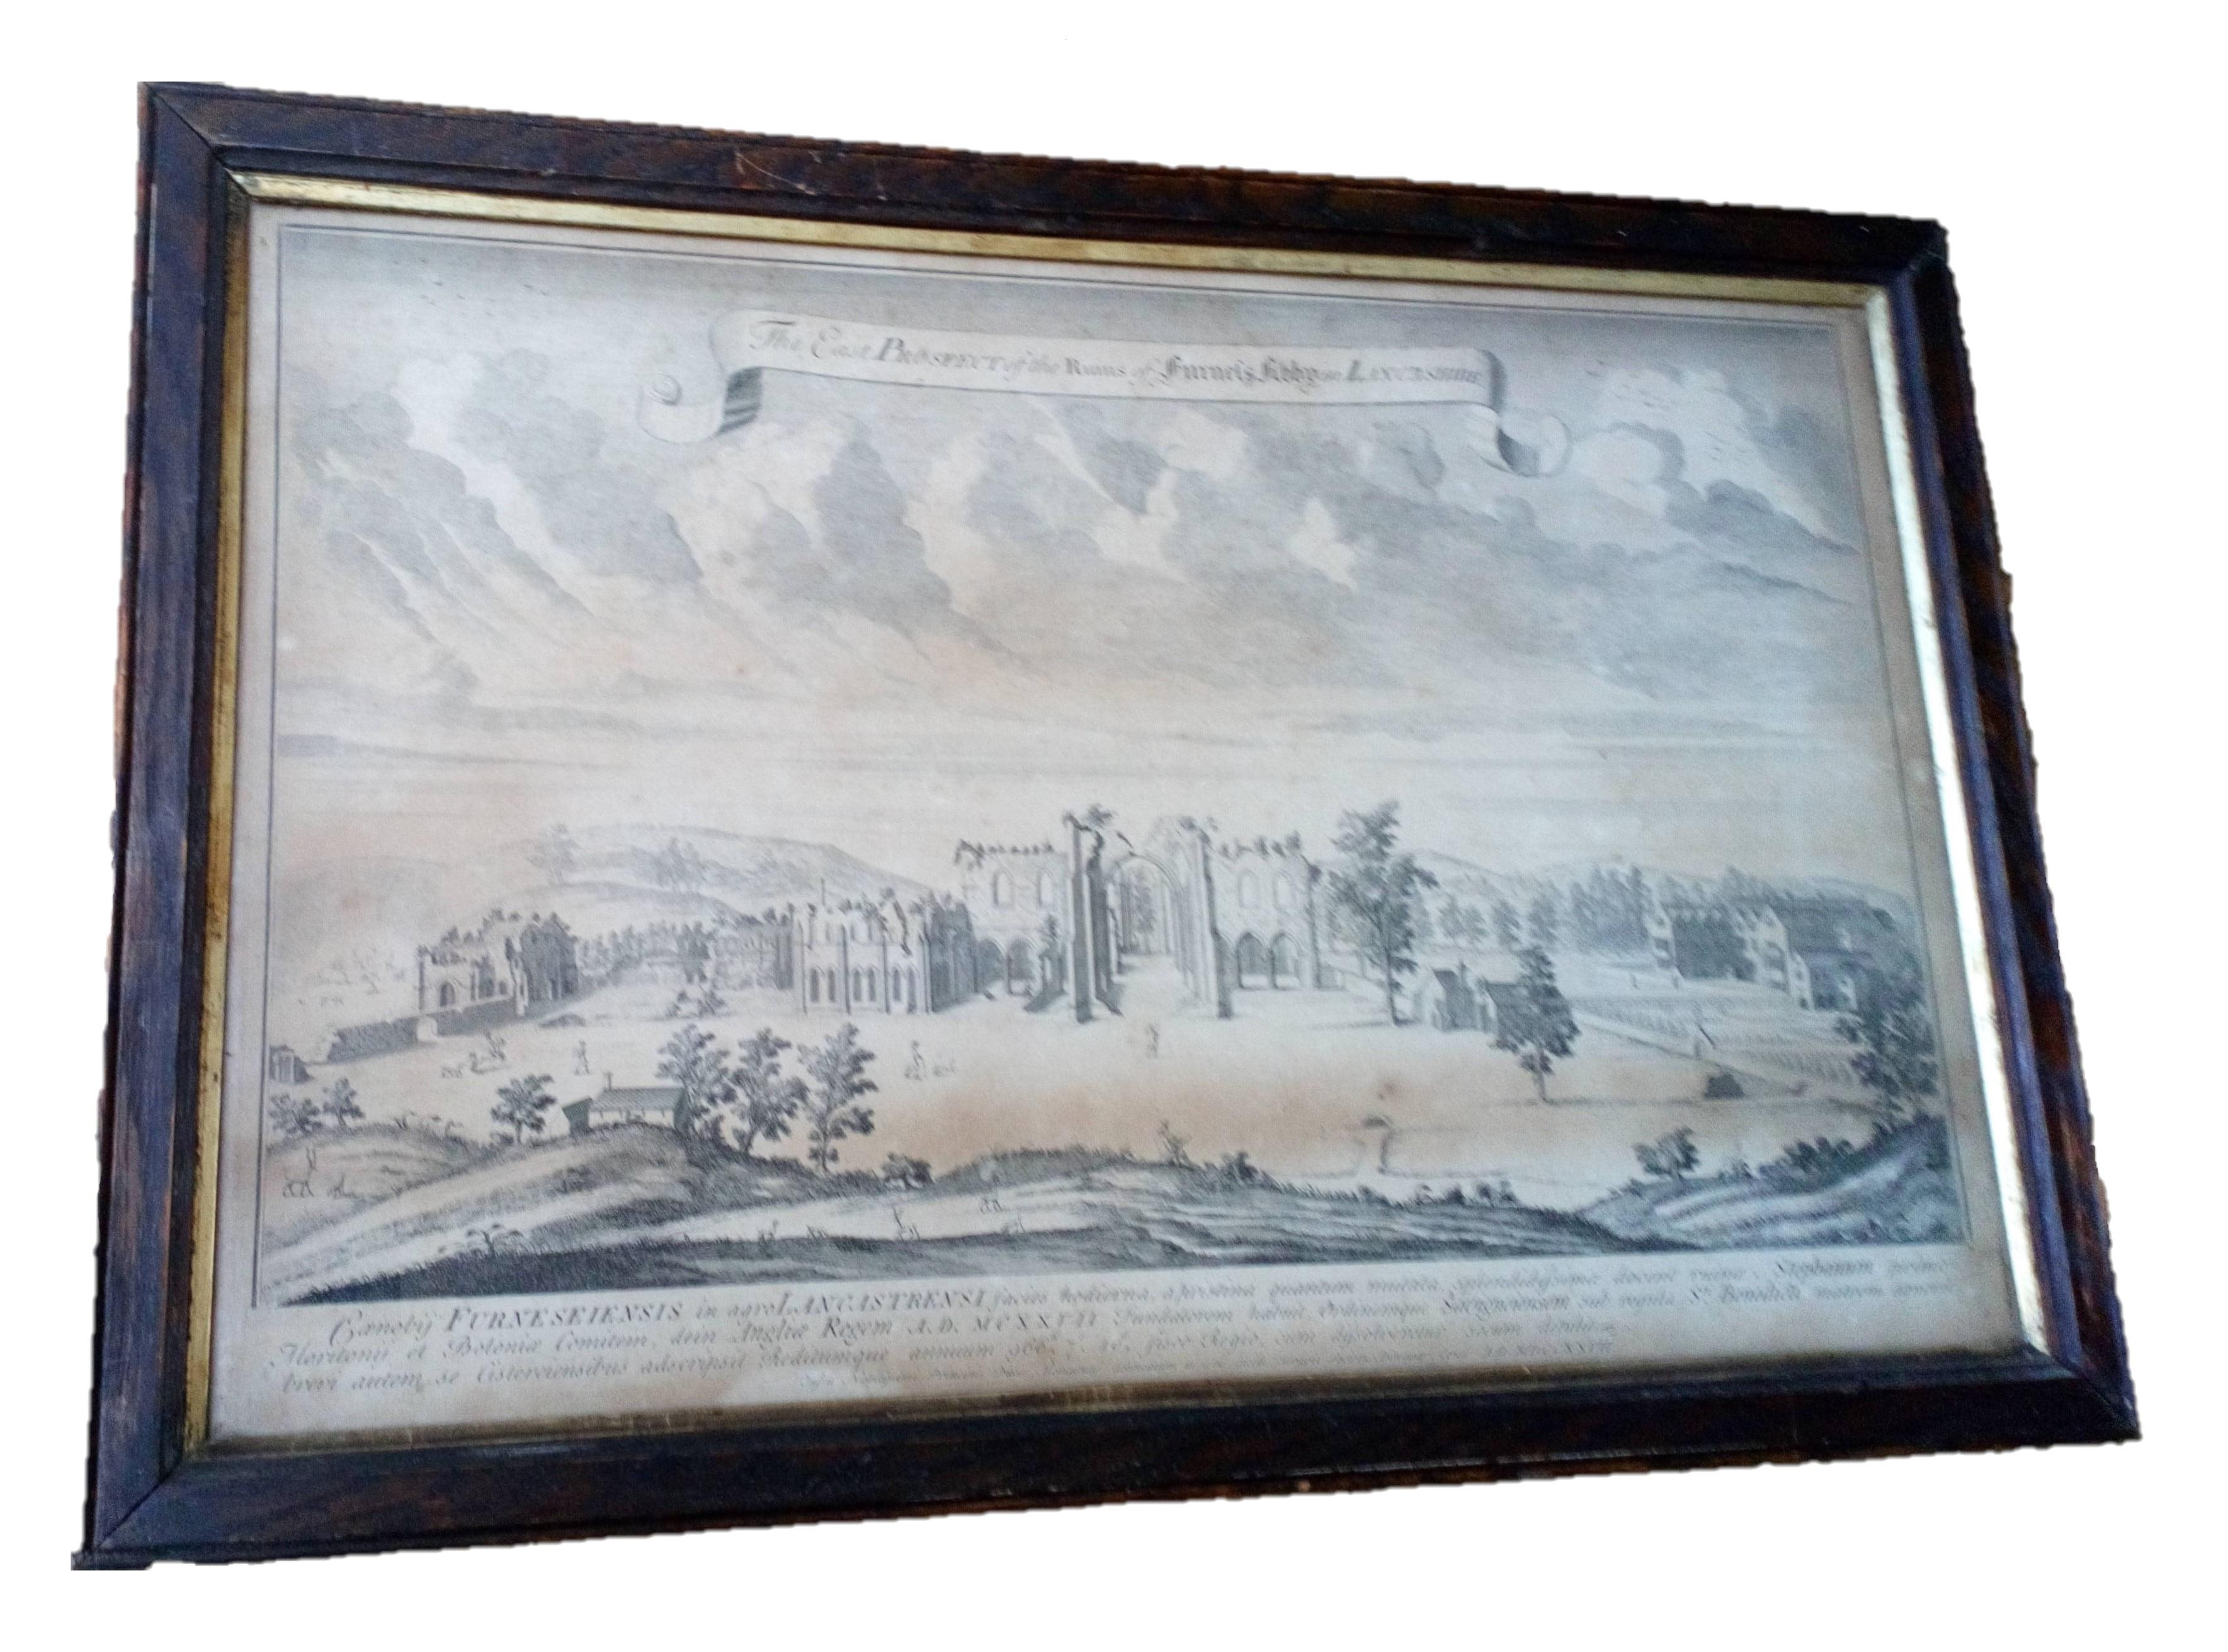 Antiquarian framed engraving of St Mary's Abbey or Furness Abbey Lancashire engraved by George Vertue for the Vetusta Monumenta in 1727 for the Society for Antiquaries of London